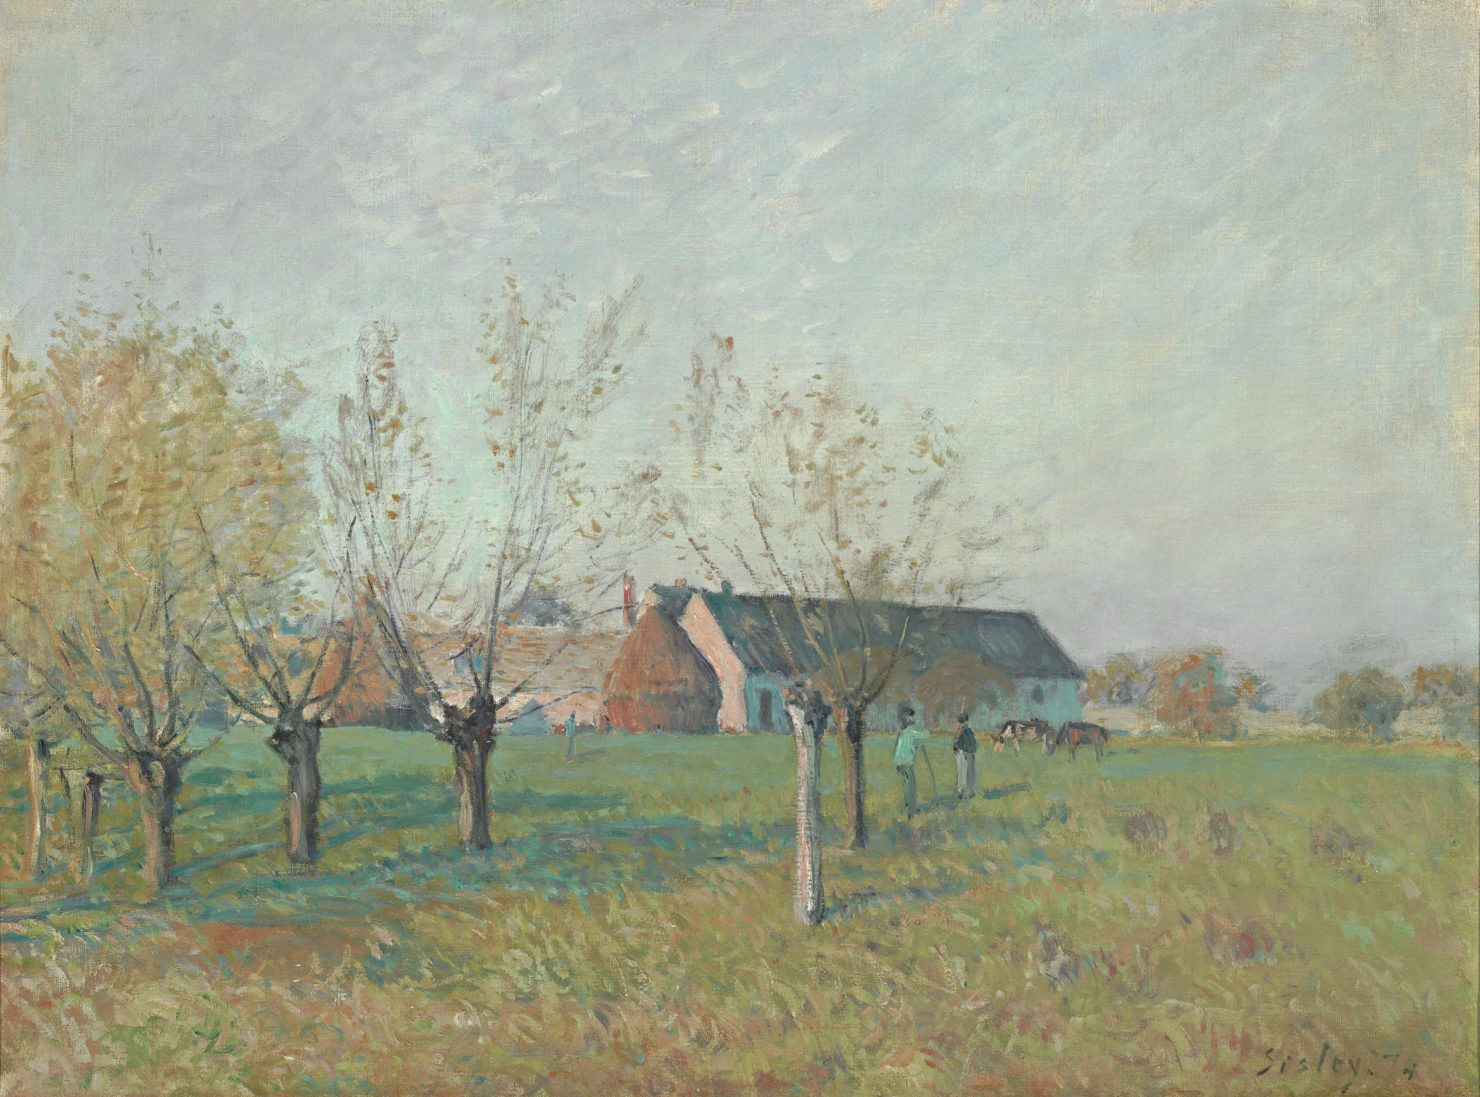 Impressionist landscape painting by Sisley showing an autumn morning on an orchard.